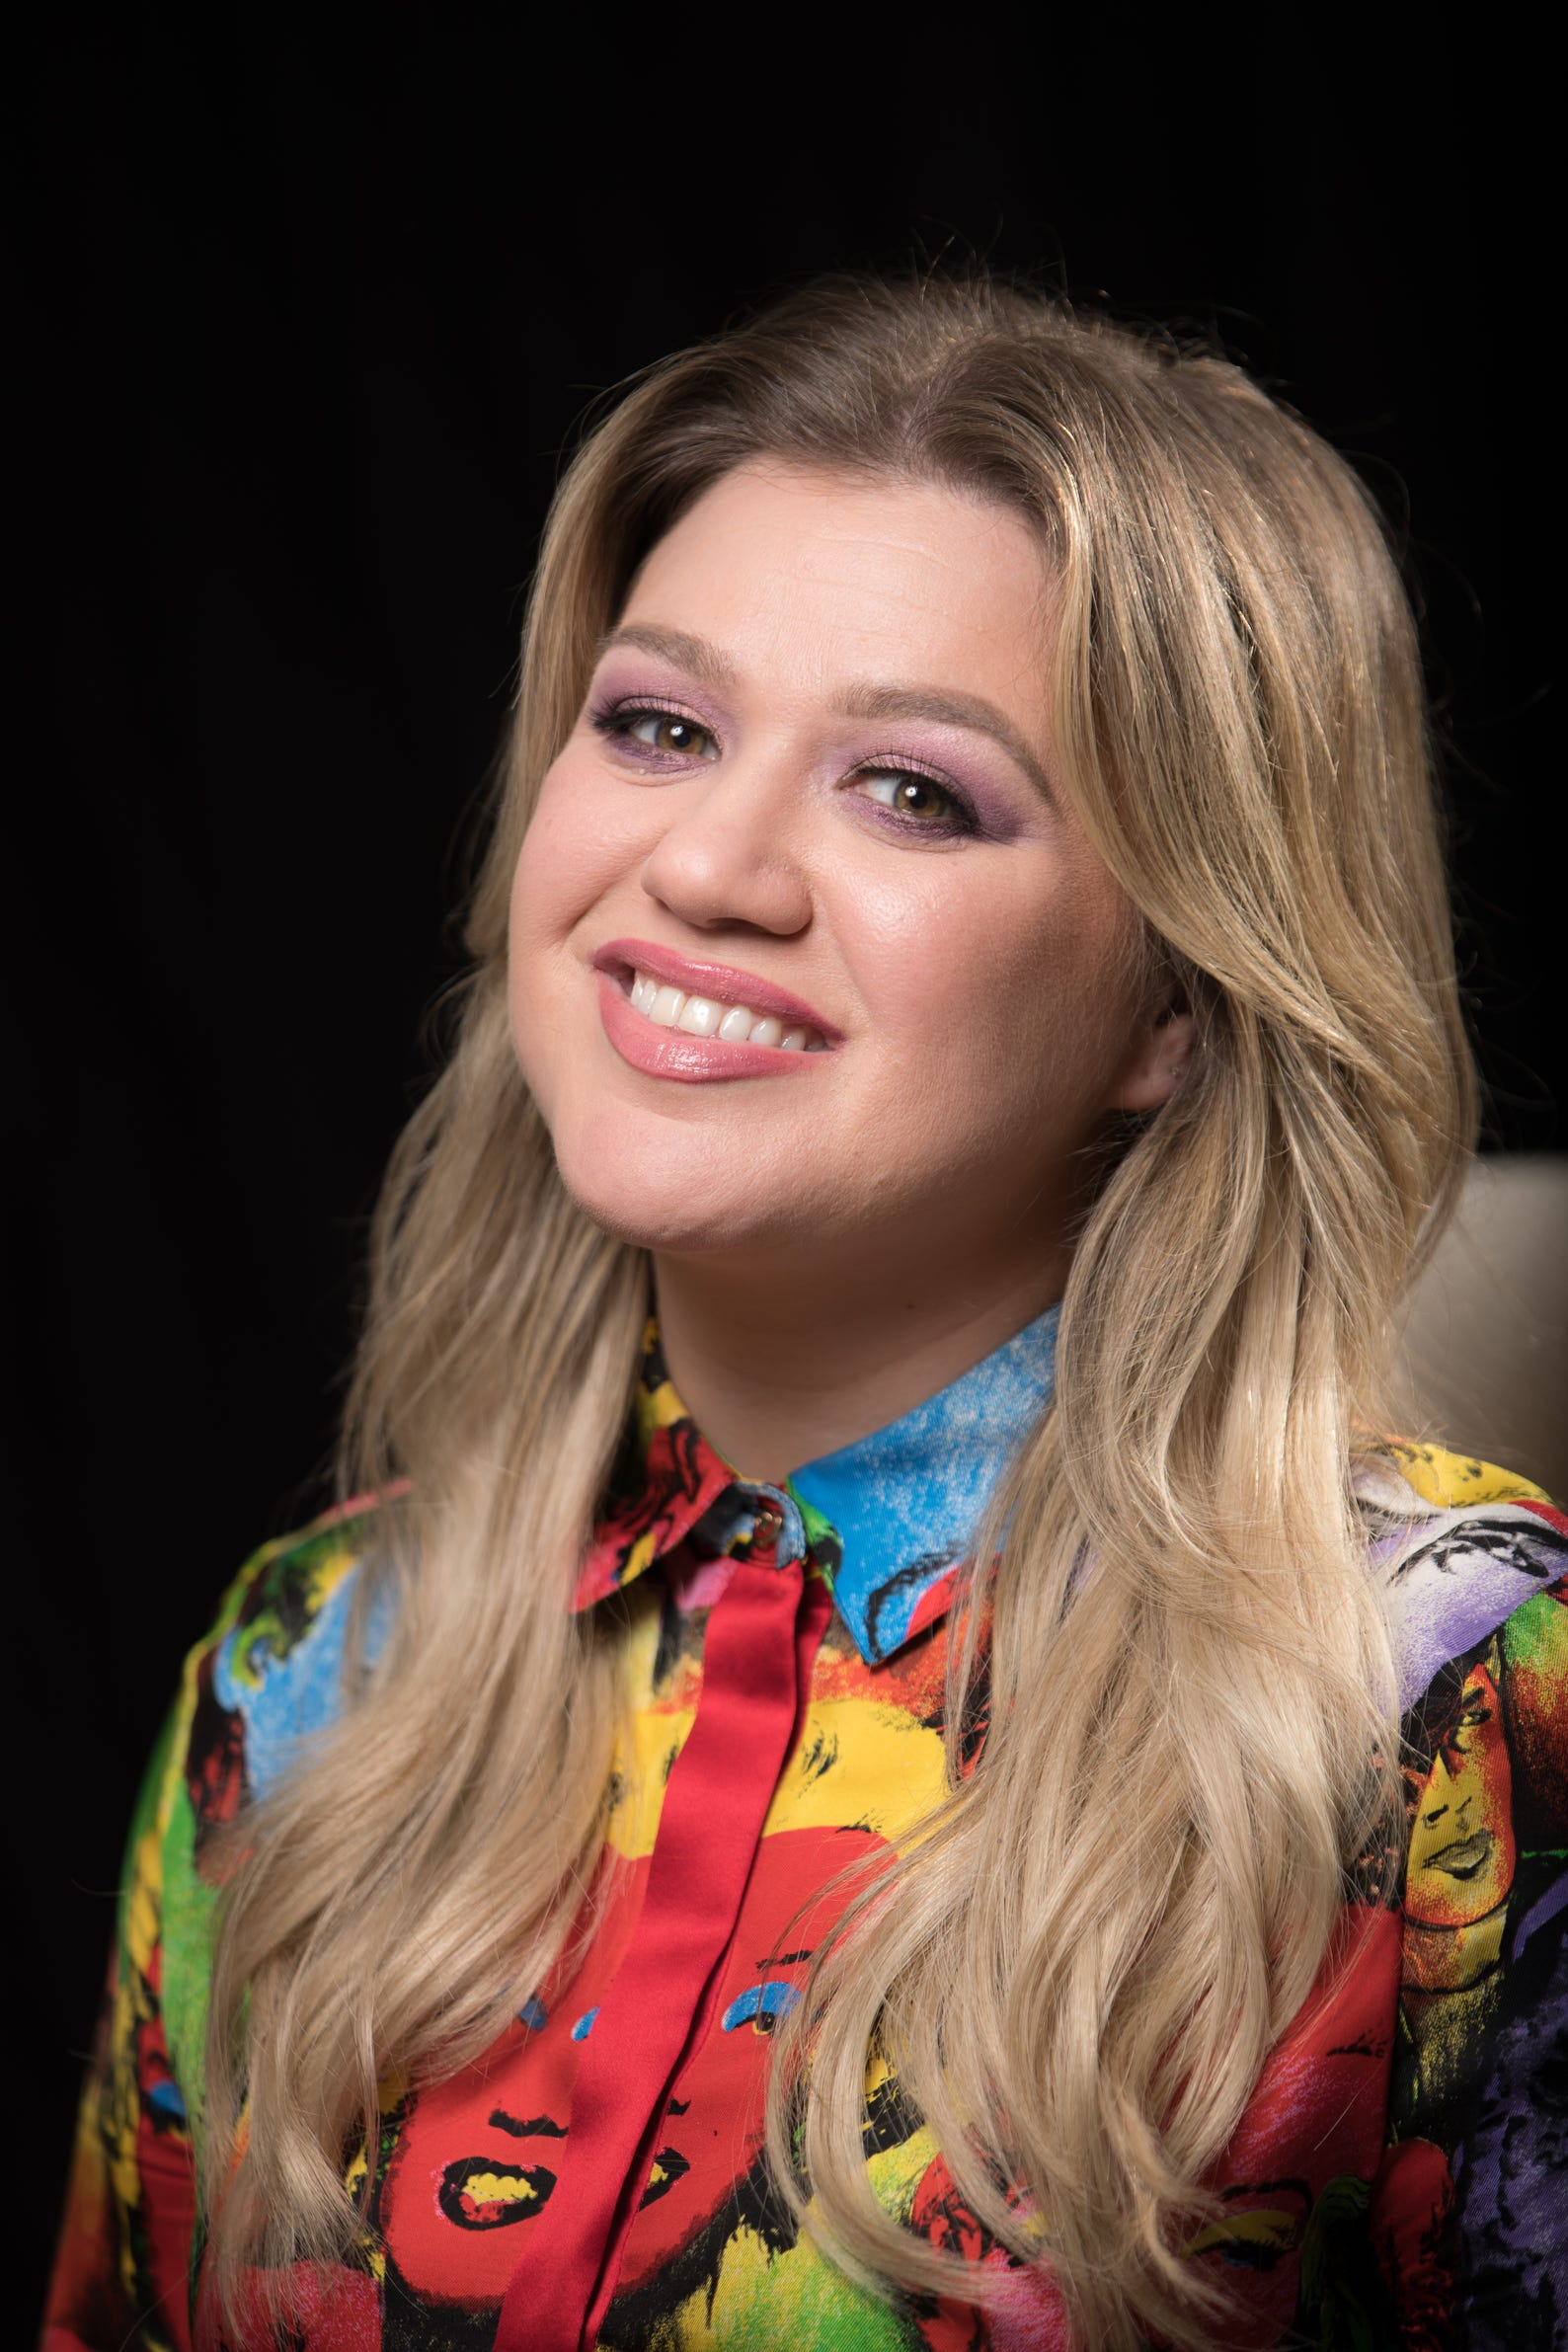 Kelly Clarkson Through The Years From Idol To Bonafide Superstar